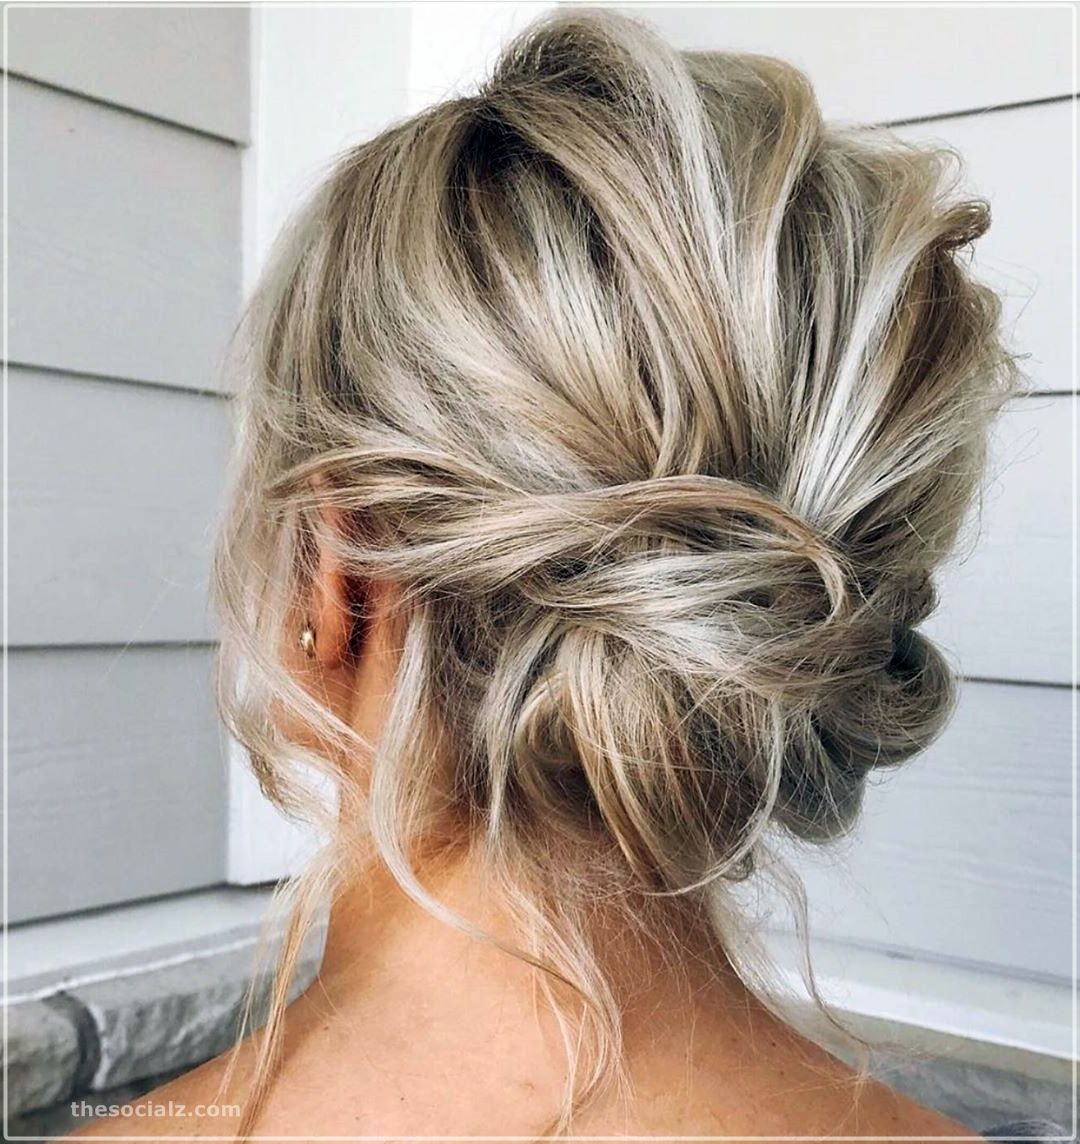 30 best updos hairstyles ideas for women in 2020 hair